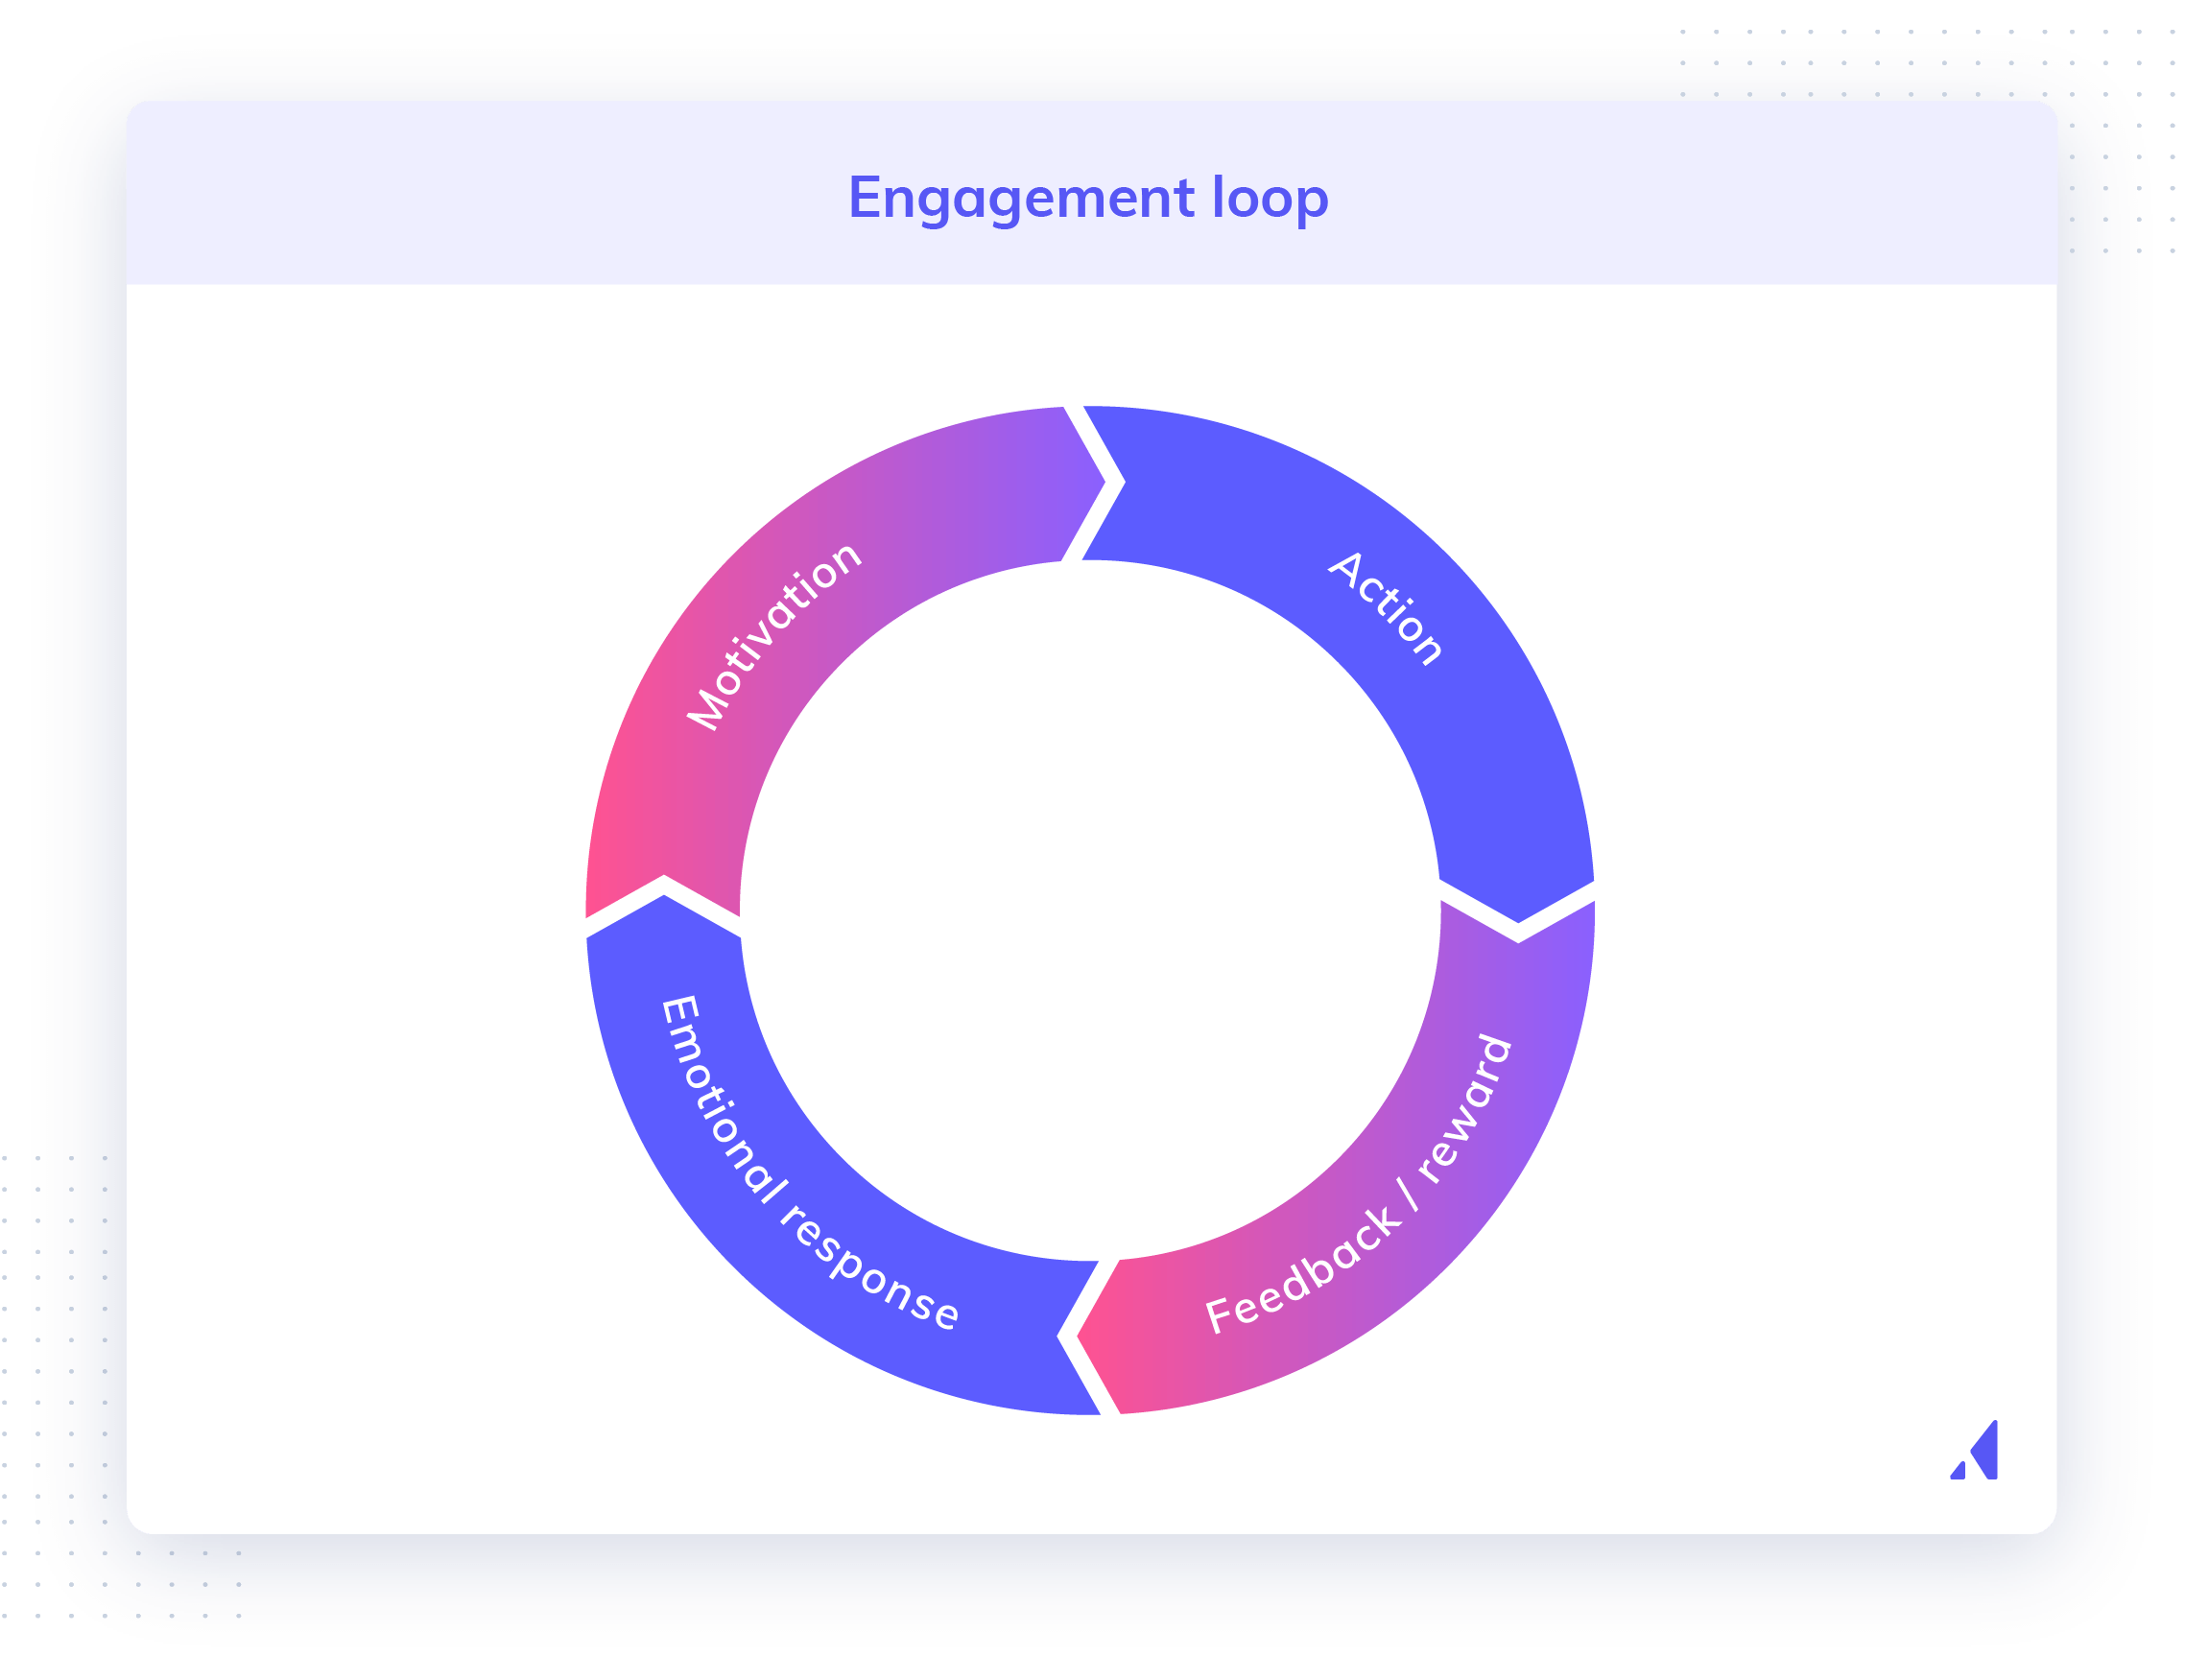 User engagement loop showing 4 main main stages of engagement: initial motivation, action, feedback and/or reward, and an emotional response.